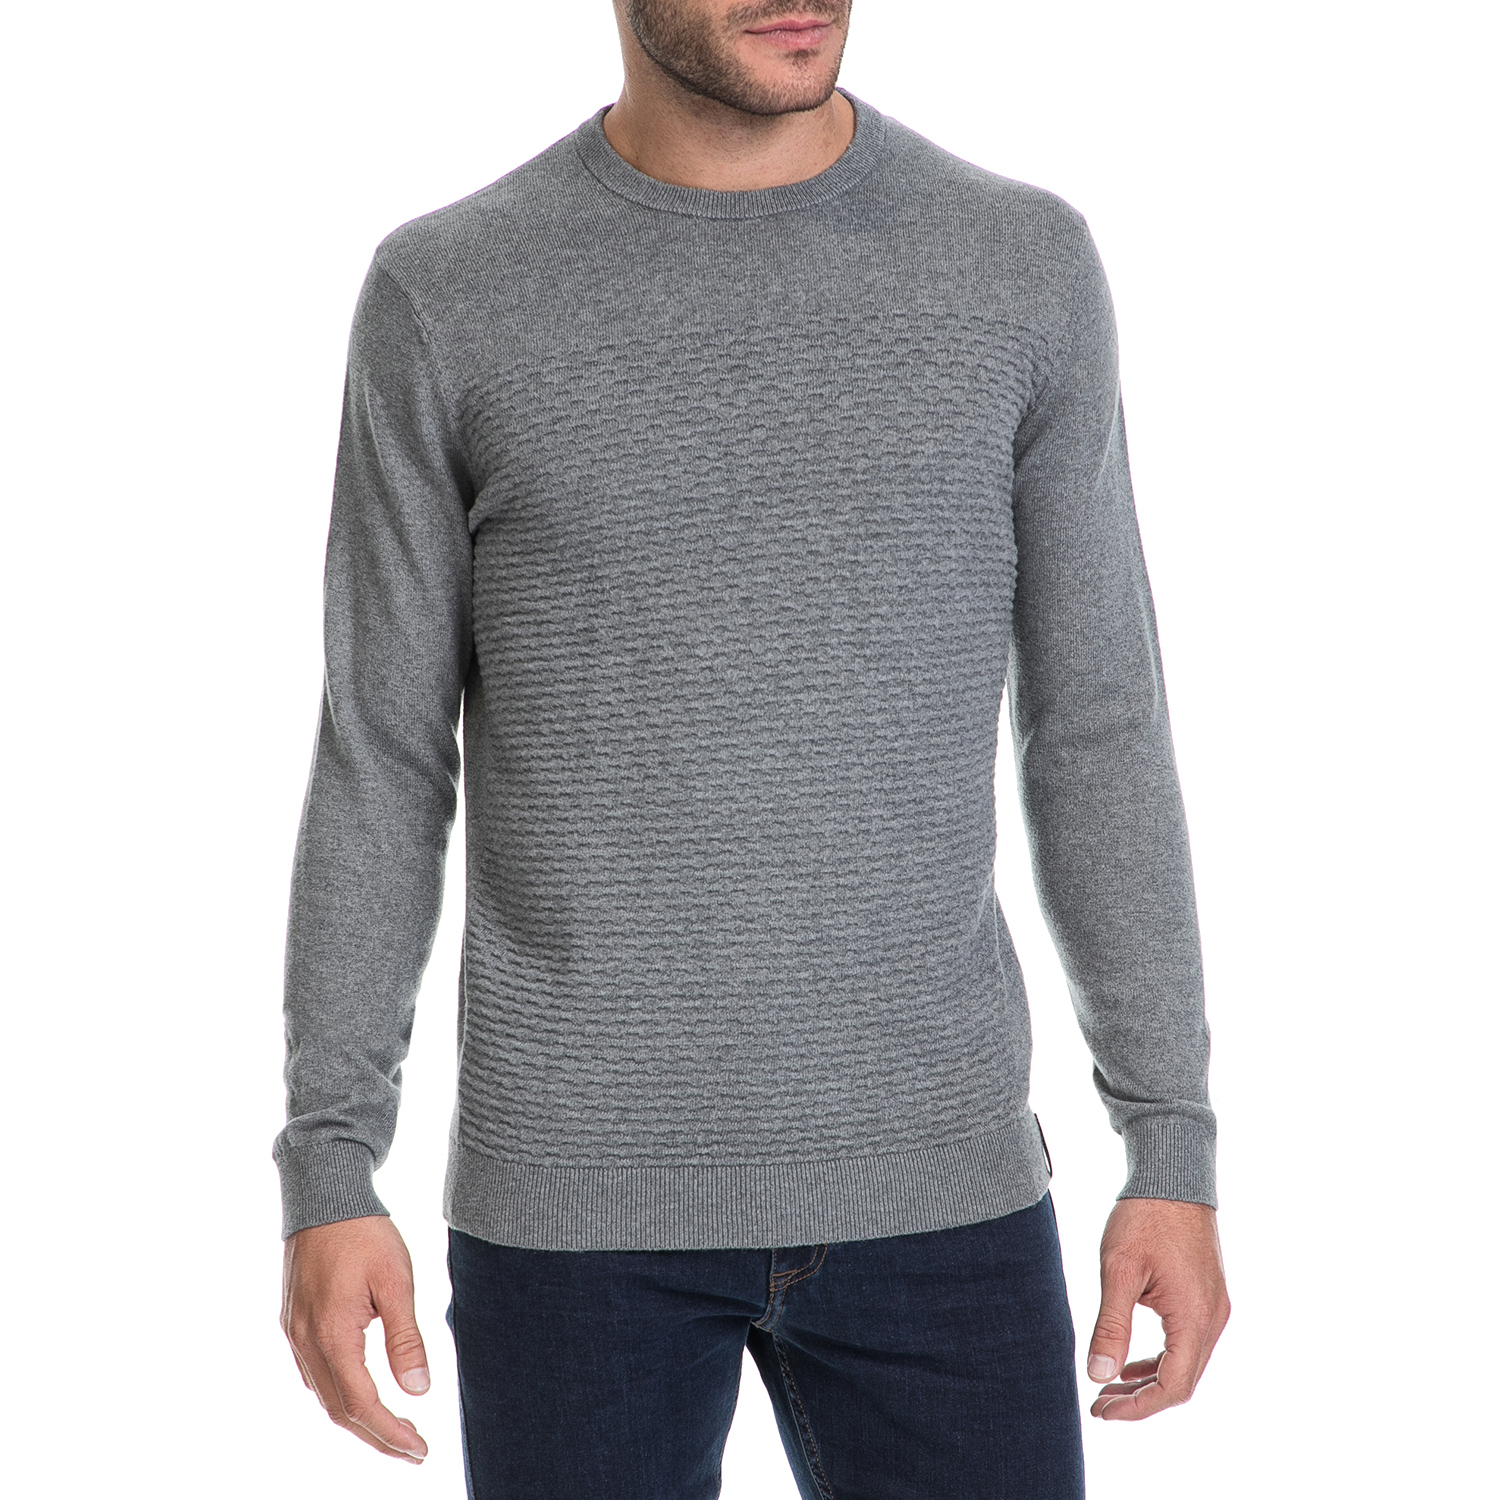 e5dc5621e86b -50% CALVIN KLEIN JEANS – Ανδρικό πουλόβερ SAFET 1 CN SWEATER LS γκρι